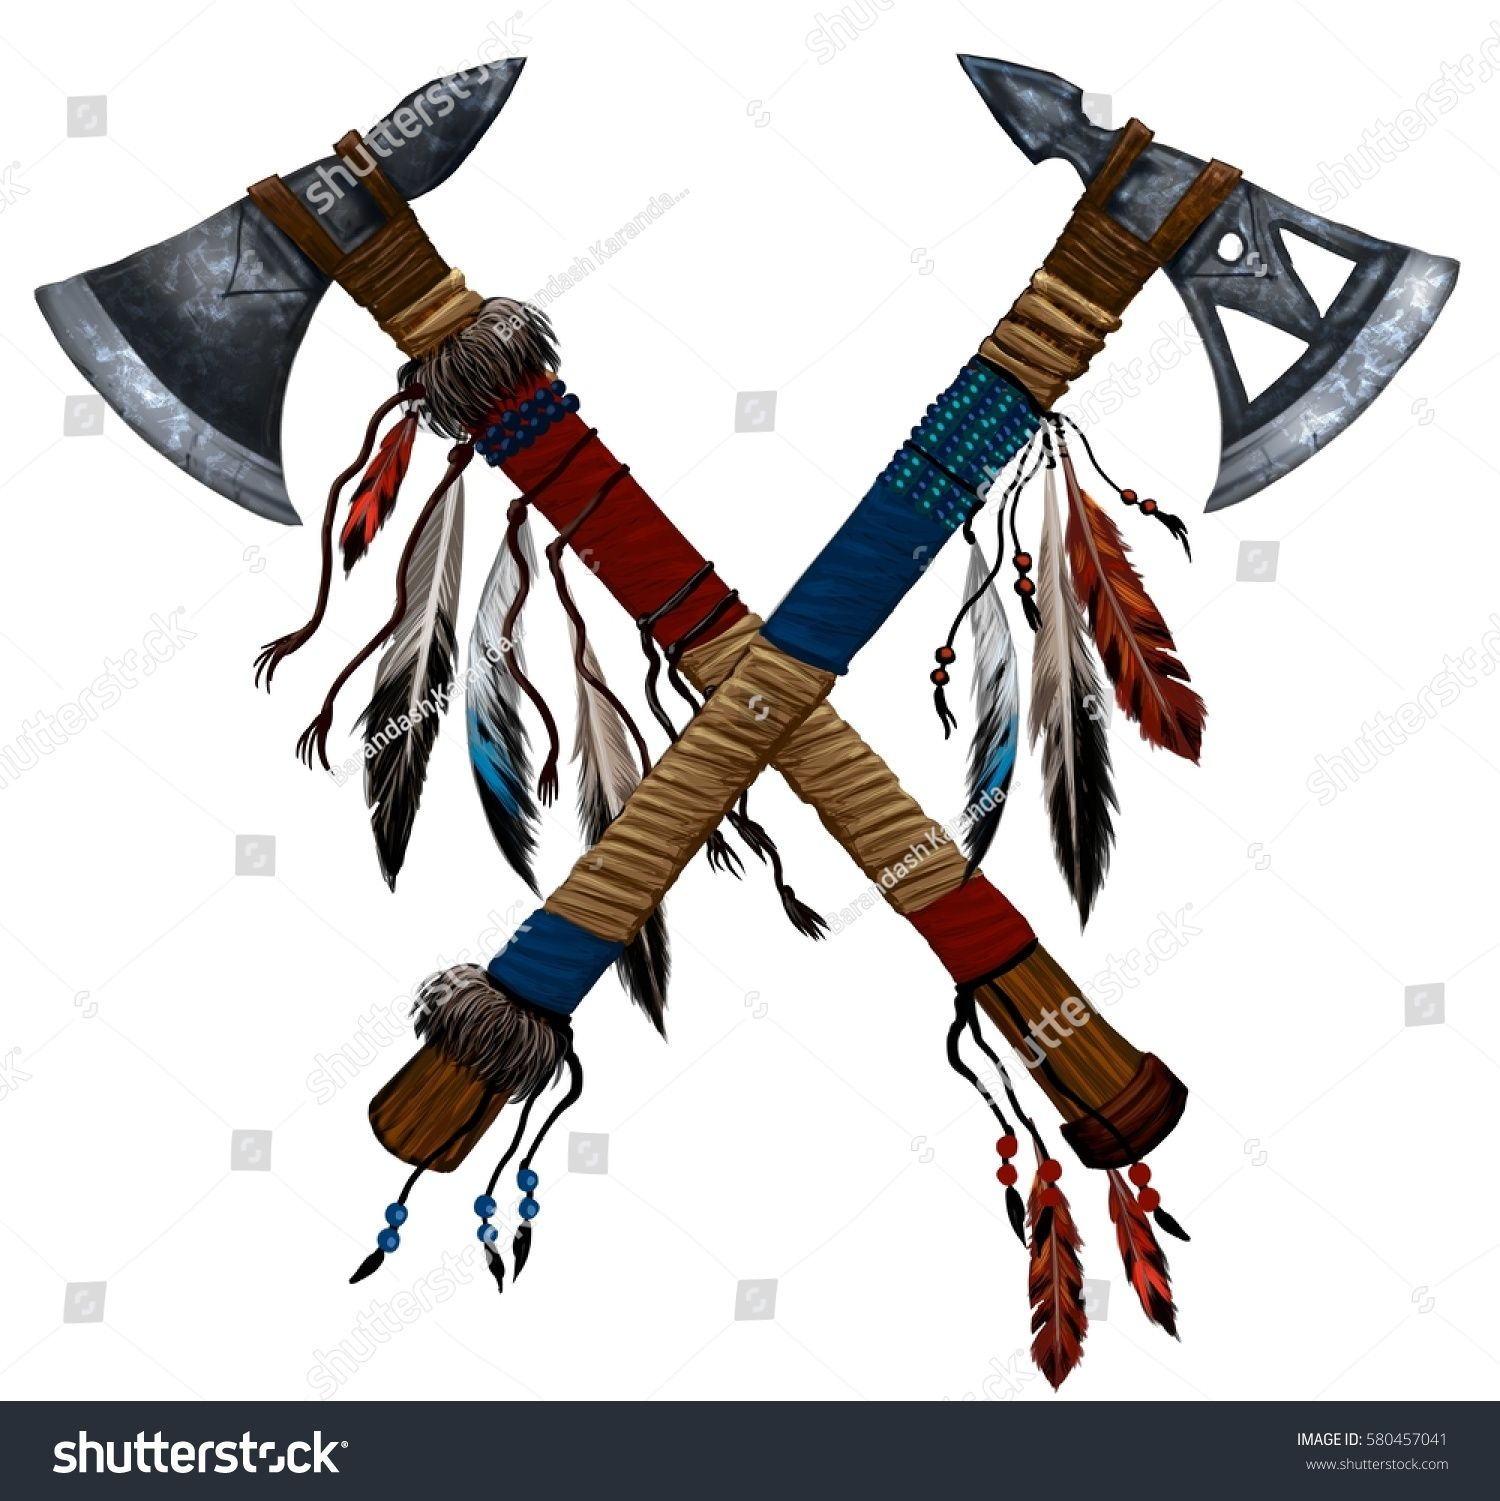 Axe clipart native american. Illustration two crossed tomahawks